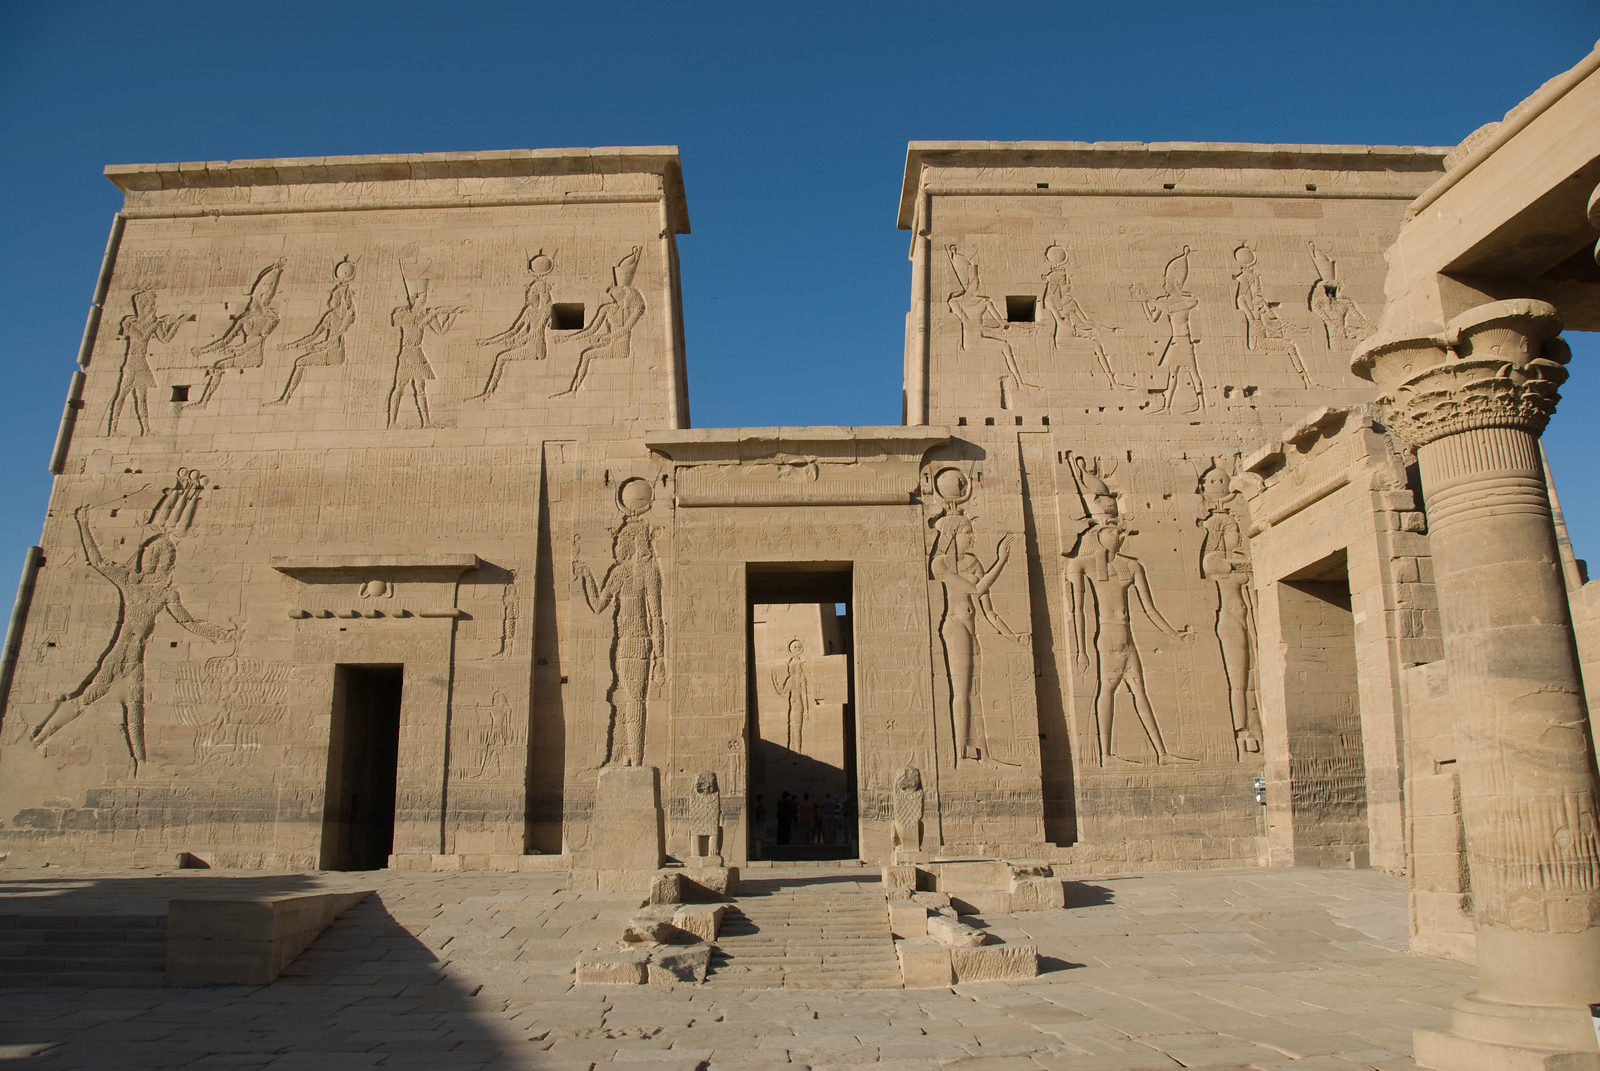 Nubian Monuments from Abu Simbel to Philae - UNESCO World Heritage Site